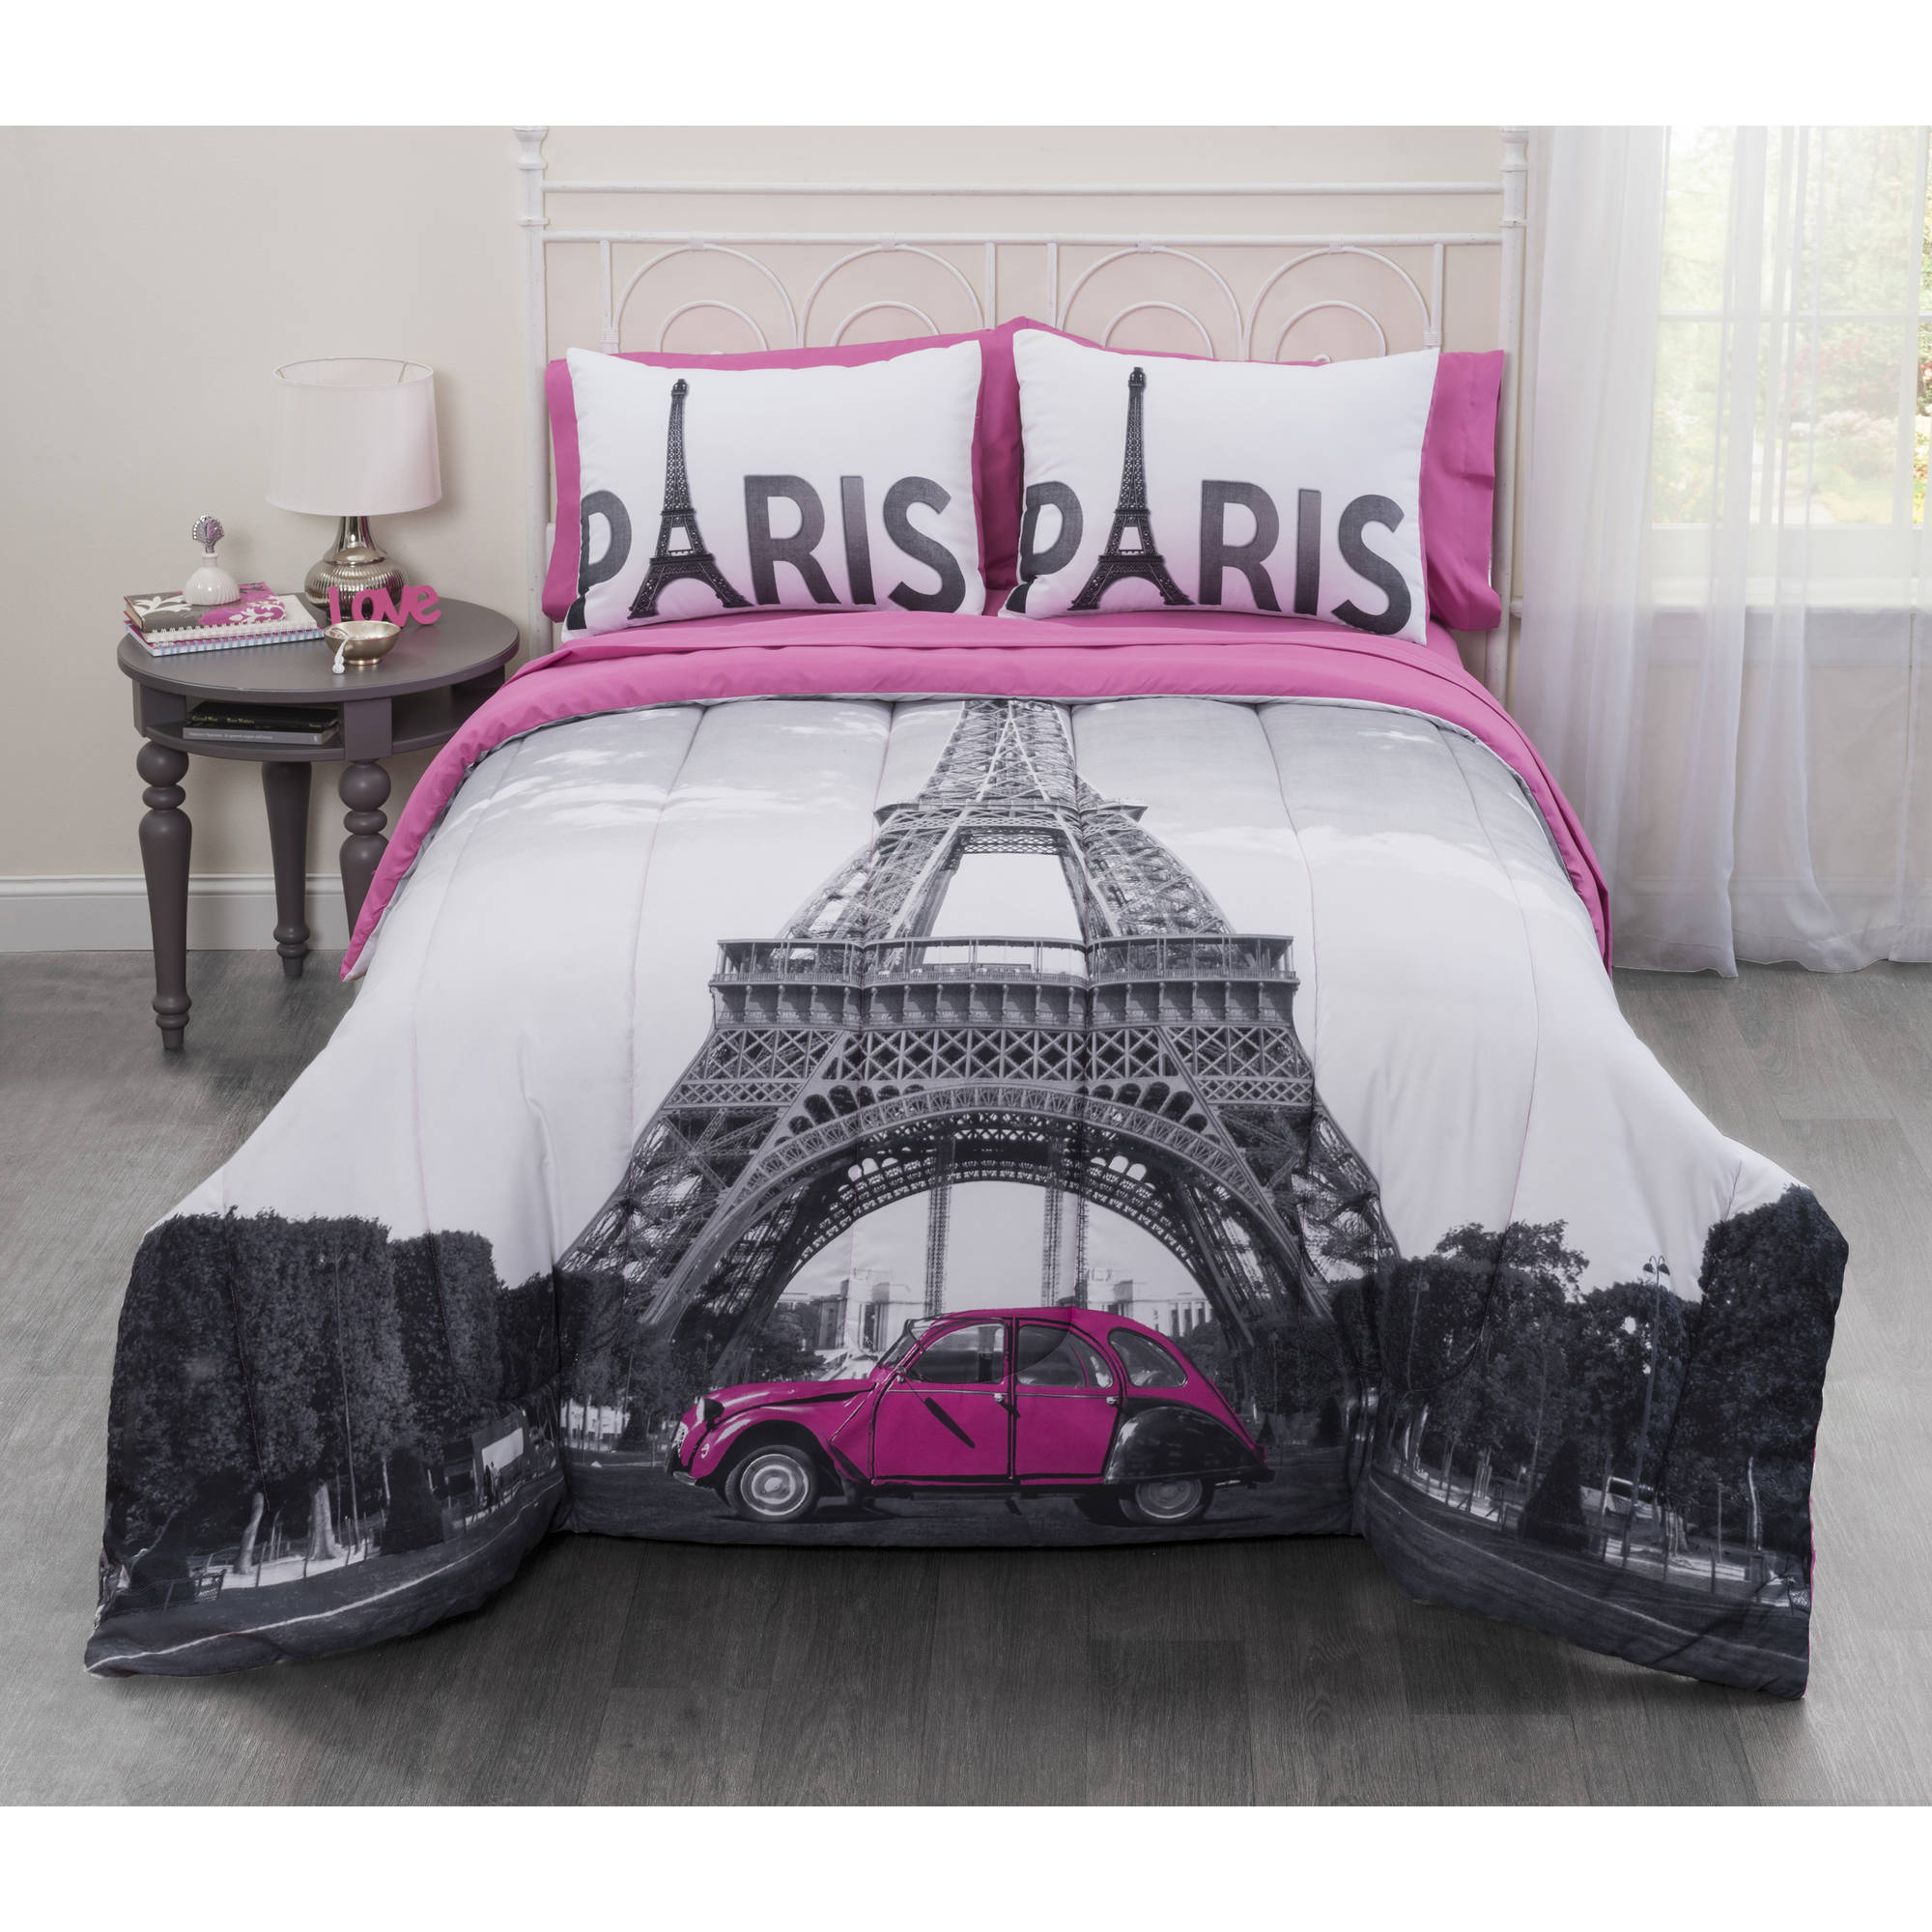 Casa Photo Real Paris Eiffel Tower Bed in a Bag Bedding